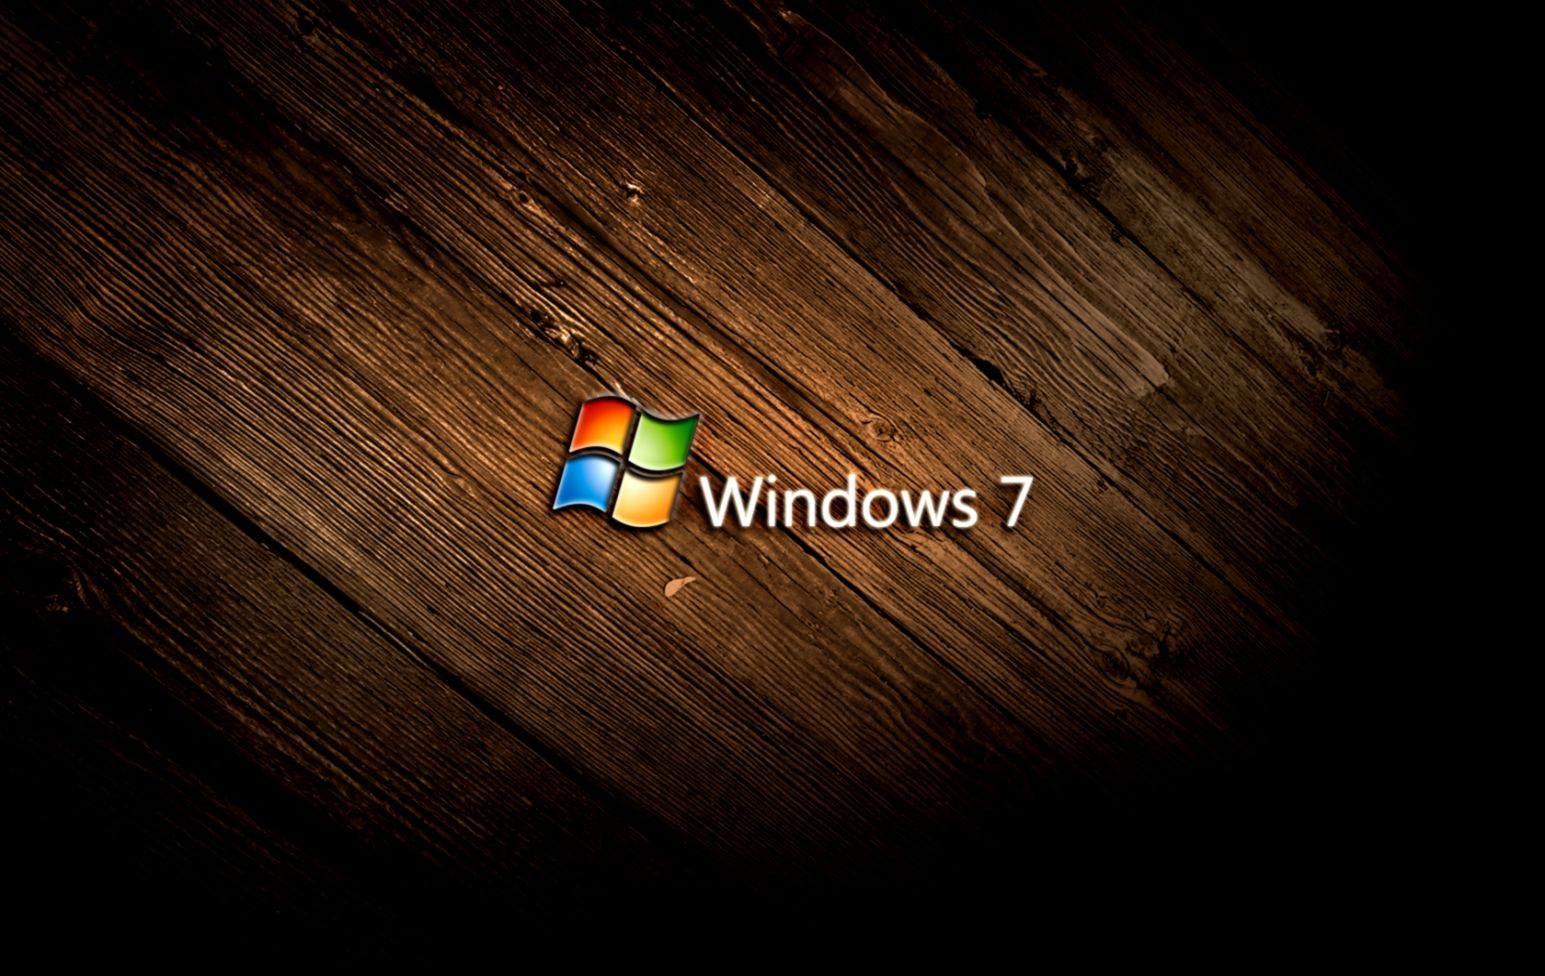 windows 7 wallpaper hd 1080p | best wallpapers hd collection